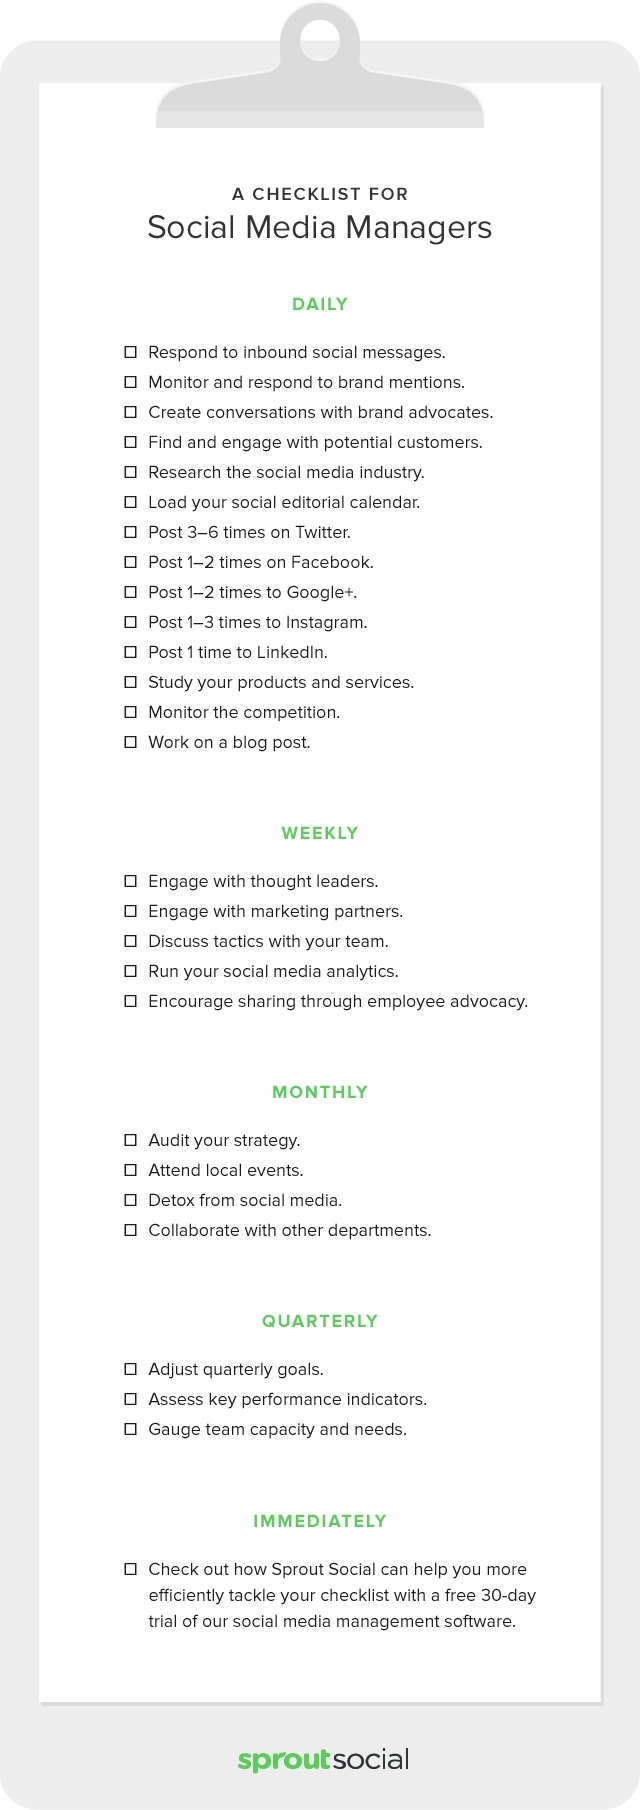 The 25 Step Social Media Checklist